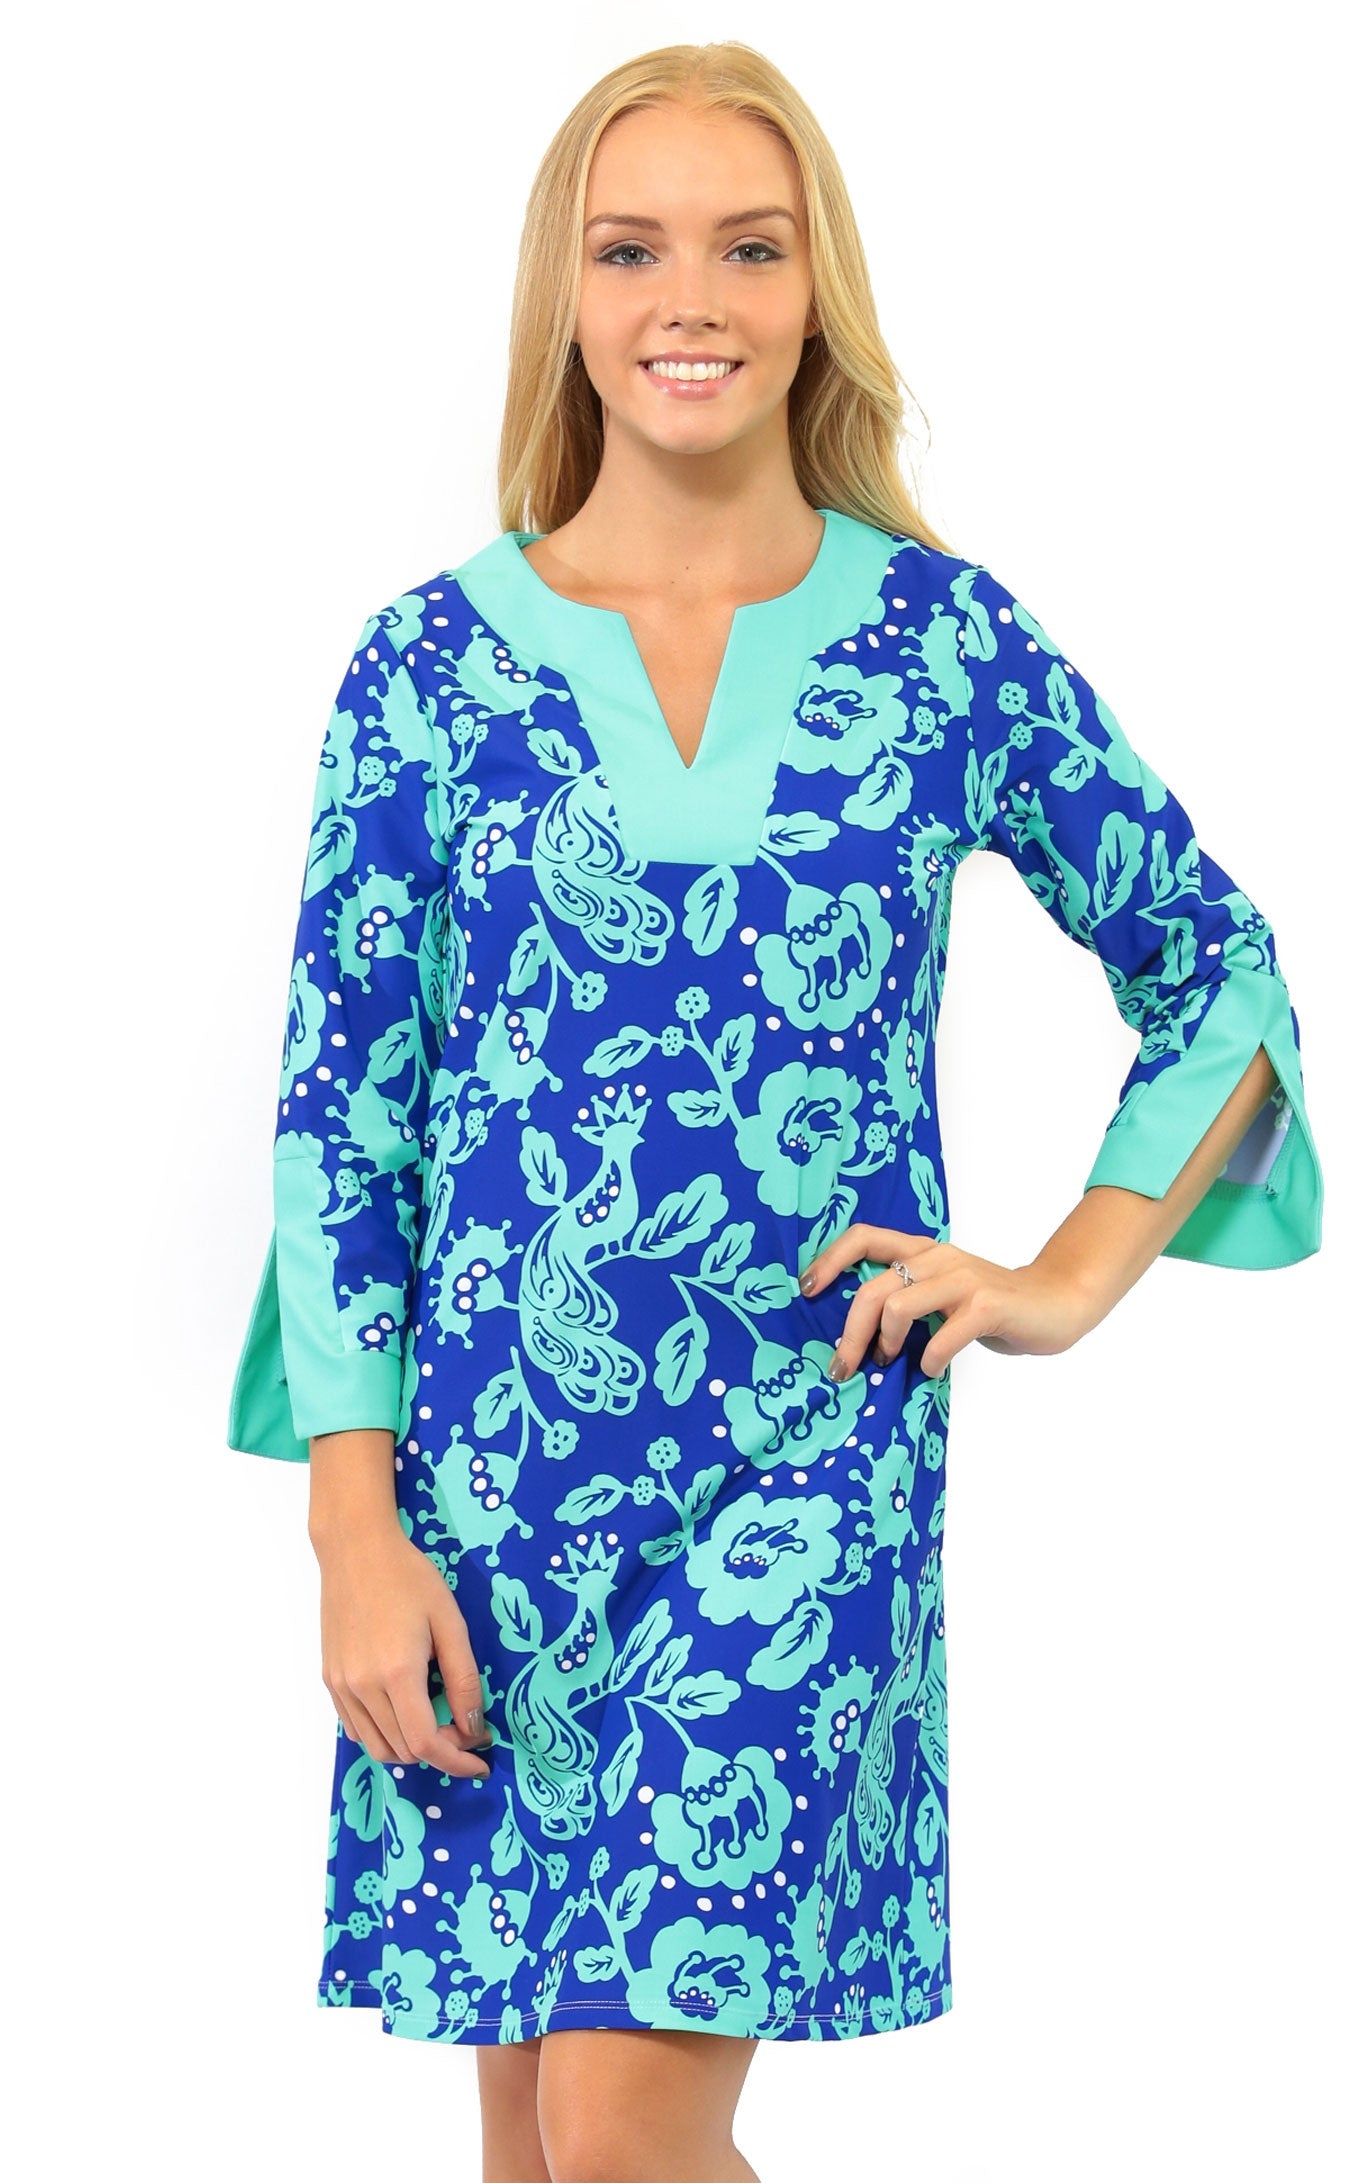 Birds Of A Feather Prescot Lane Tunic Dress Final Sale All For Color